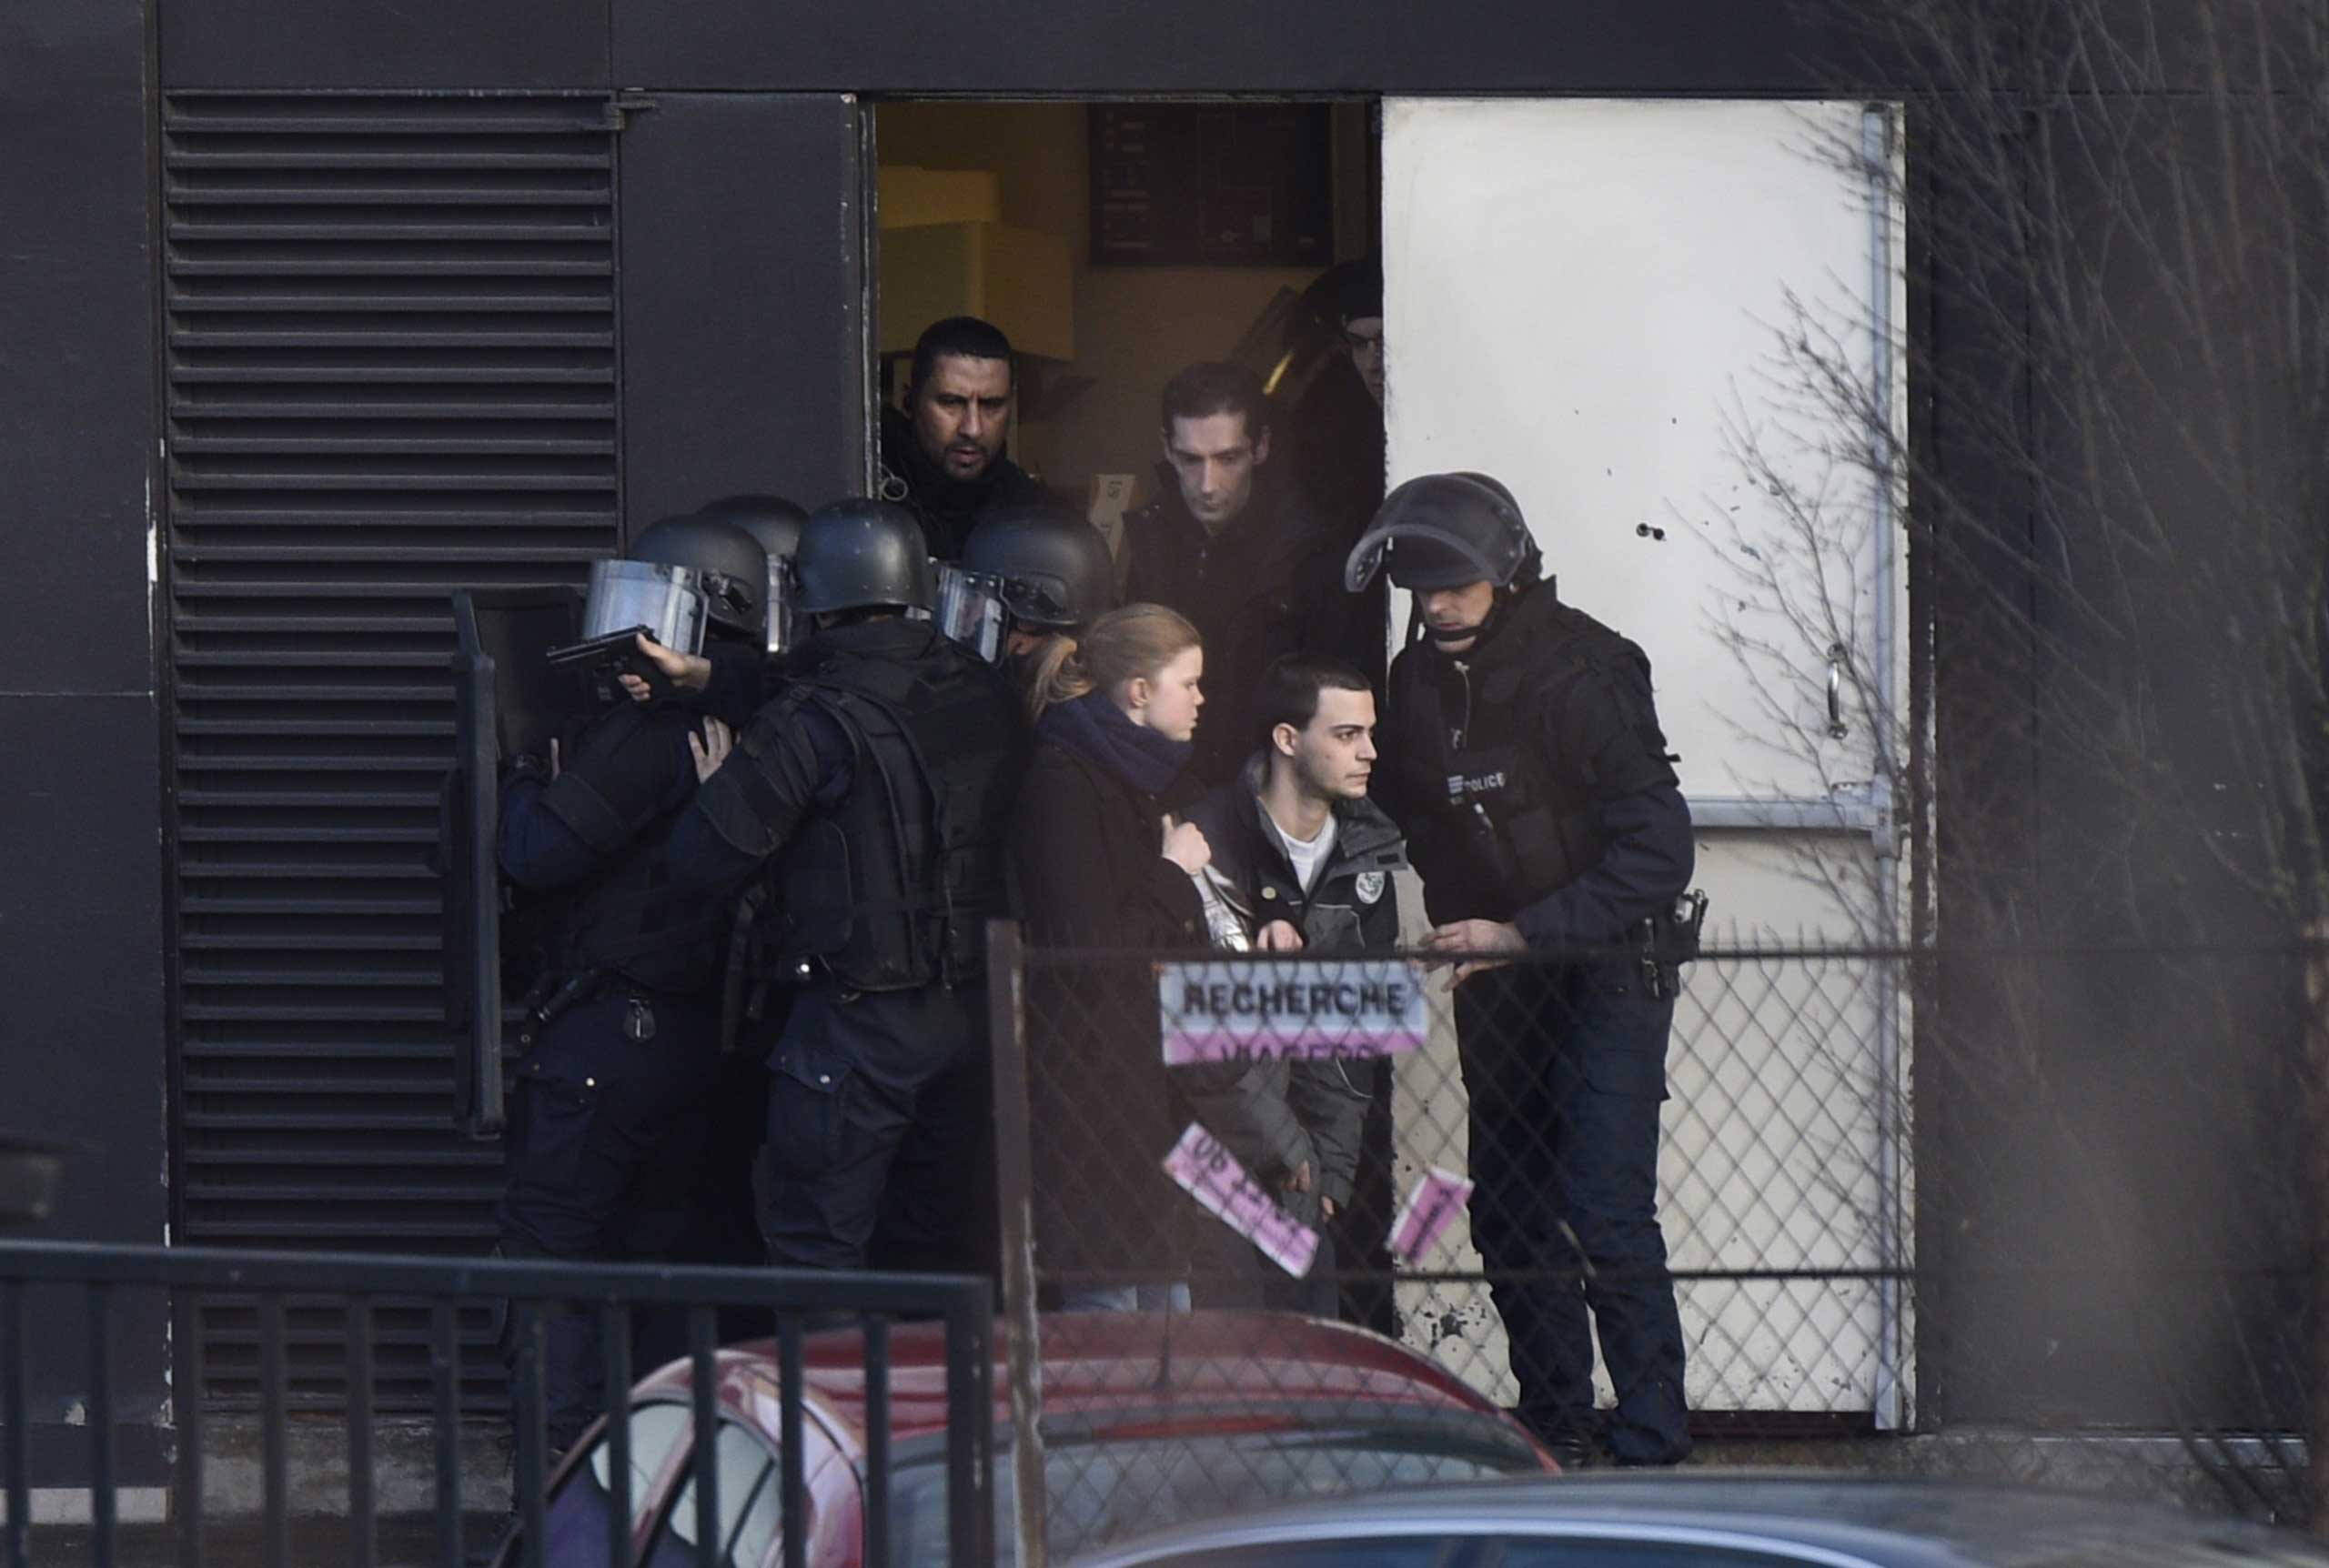 French police special forces evacuate local residents on Jan. 9, 2015 in Saint-Mande, near Porte de Vincennes, eastern Paris.